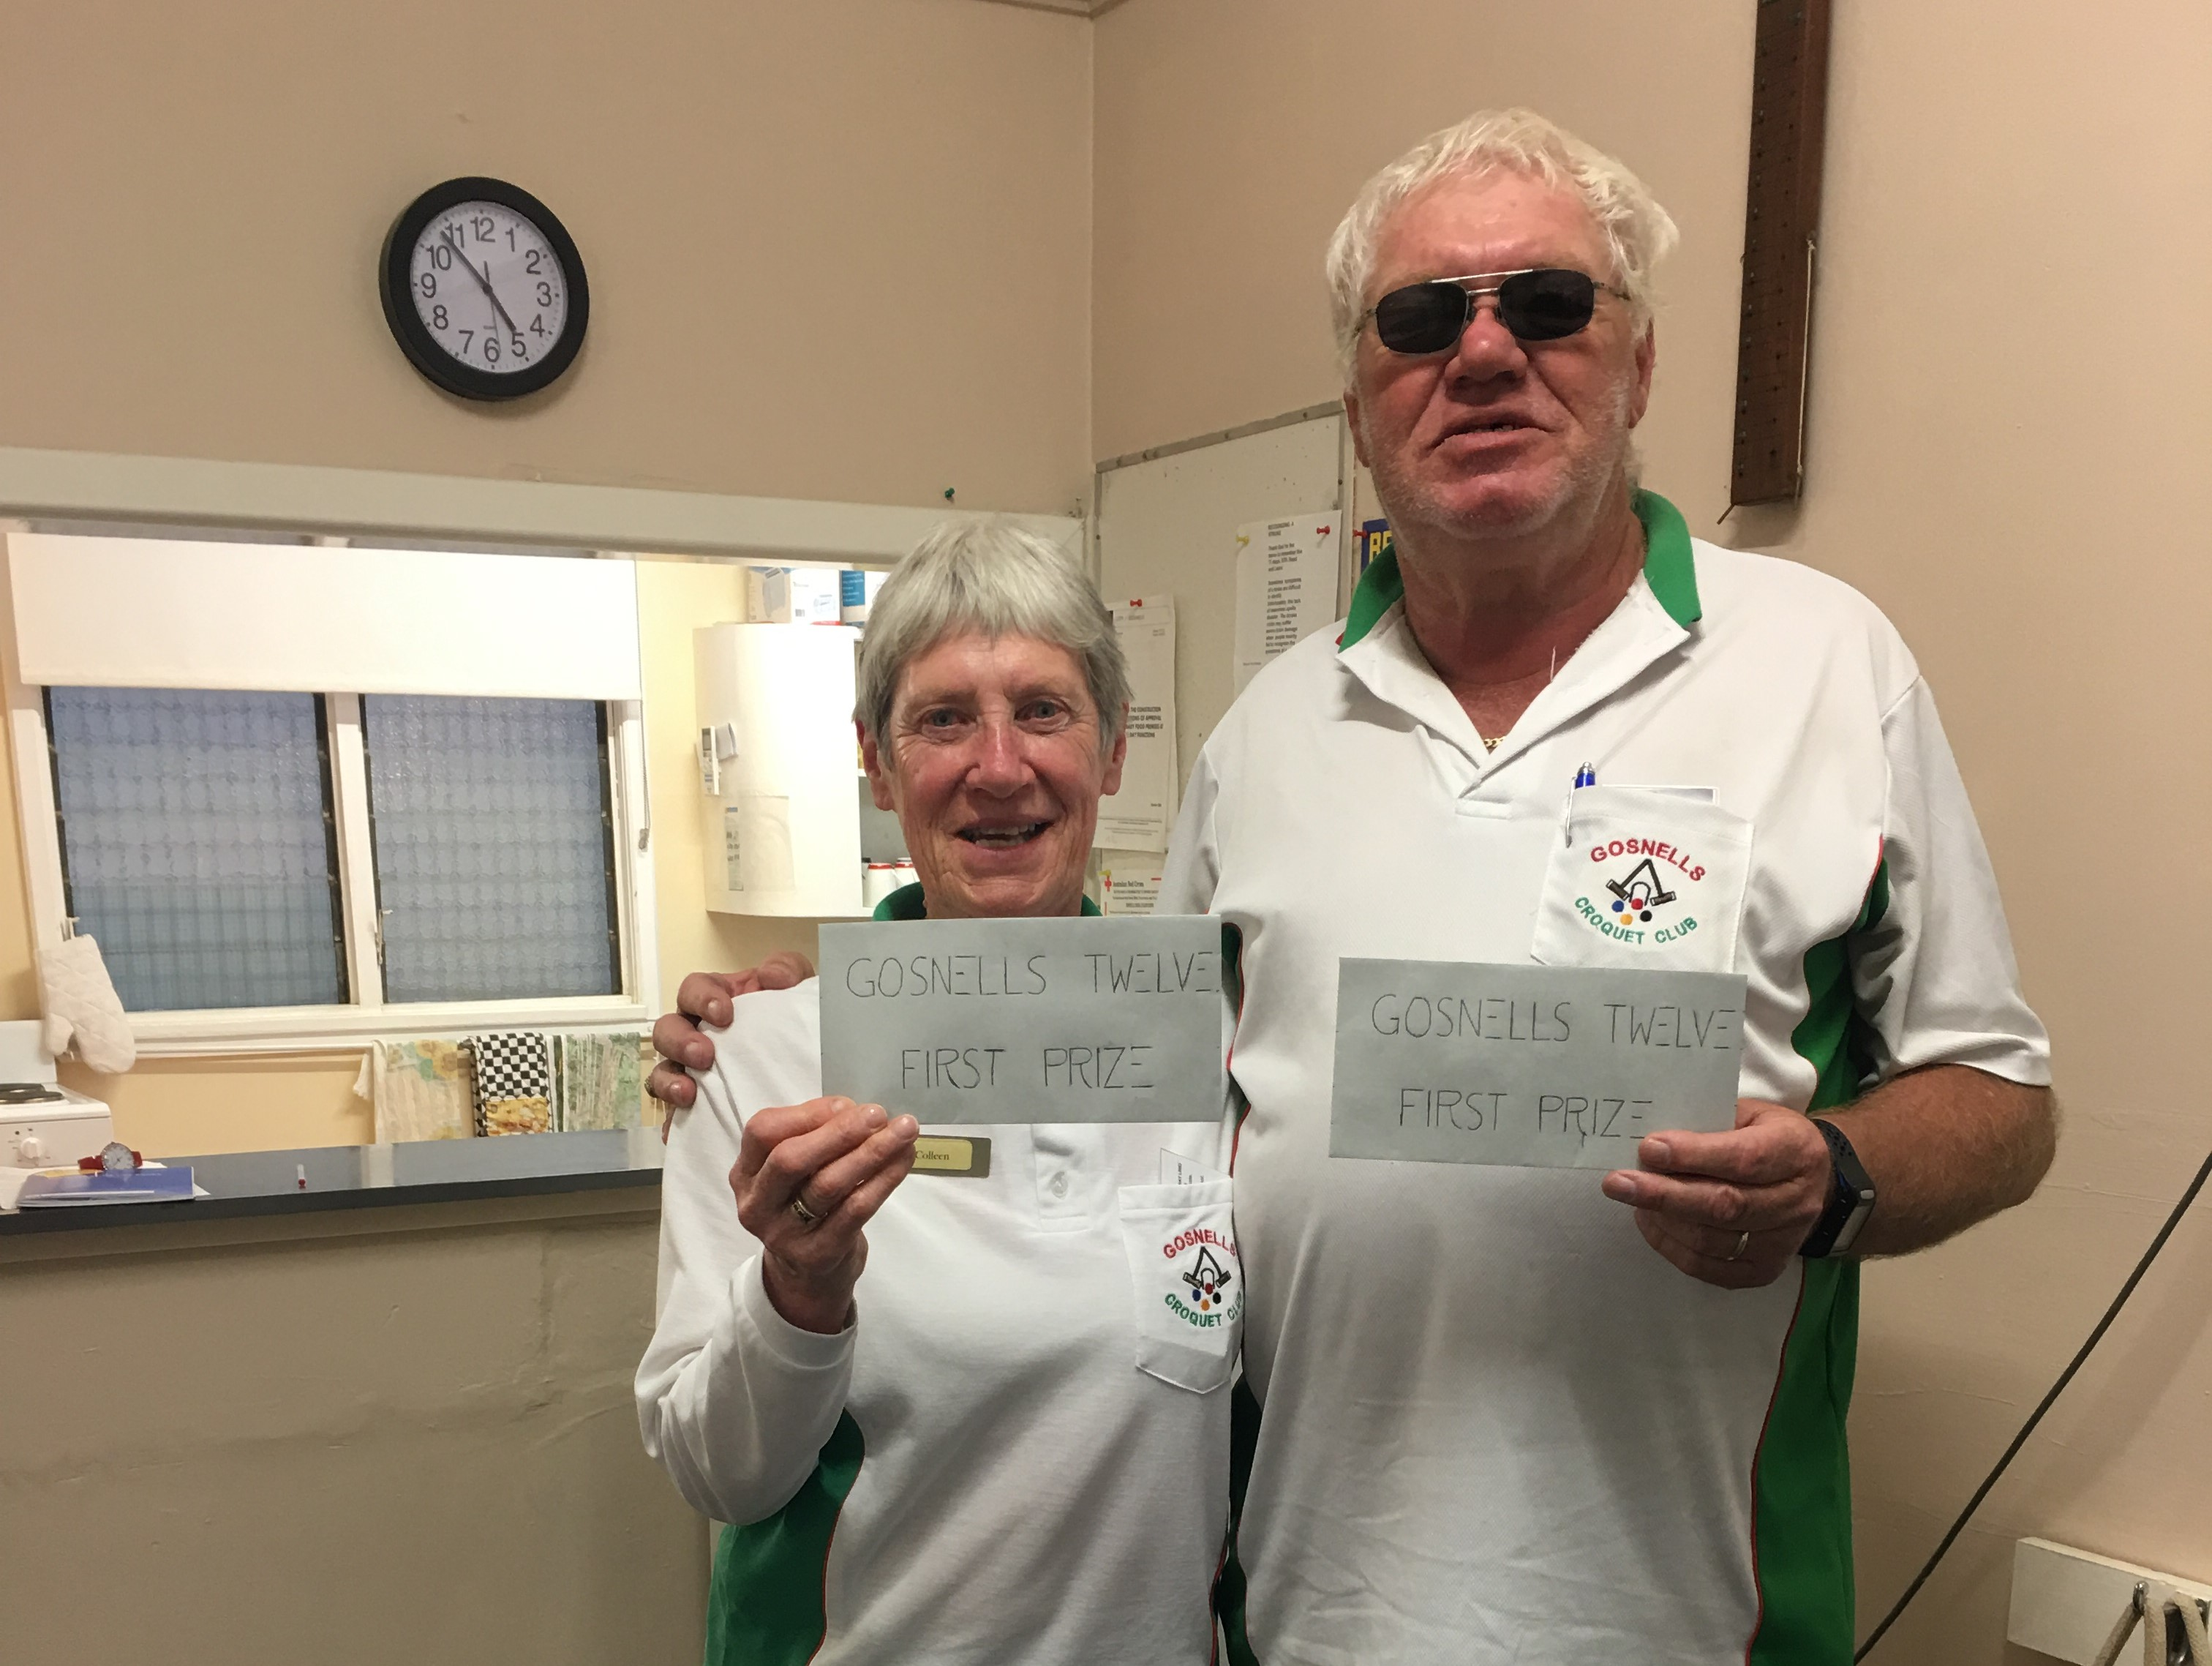 Colleen Sacco and Terry Brown won the Gosnells 12 Handicap Doubles Croquet competition.